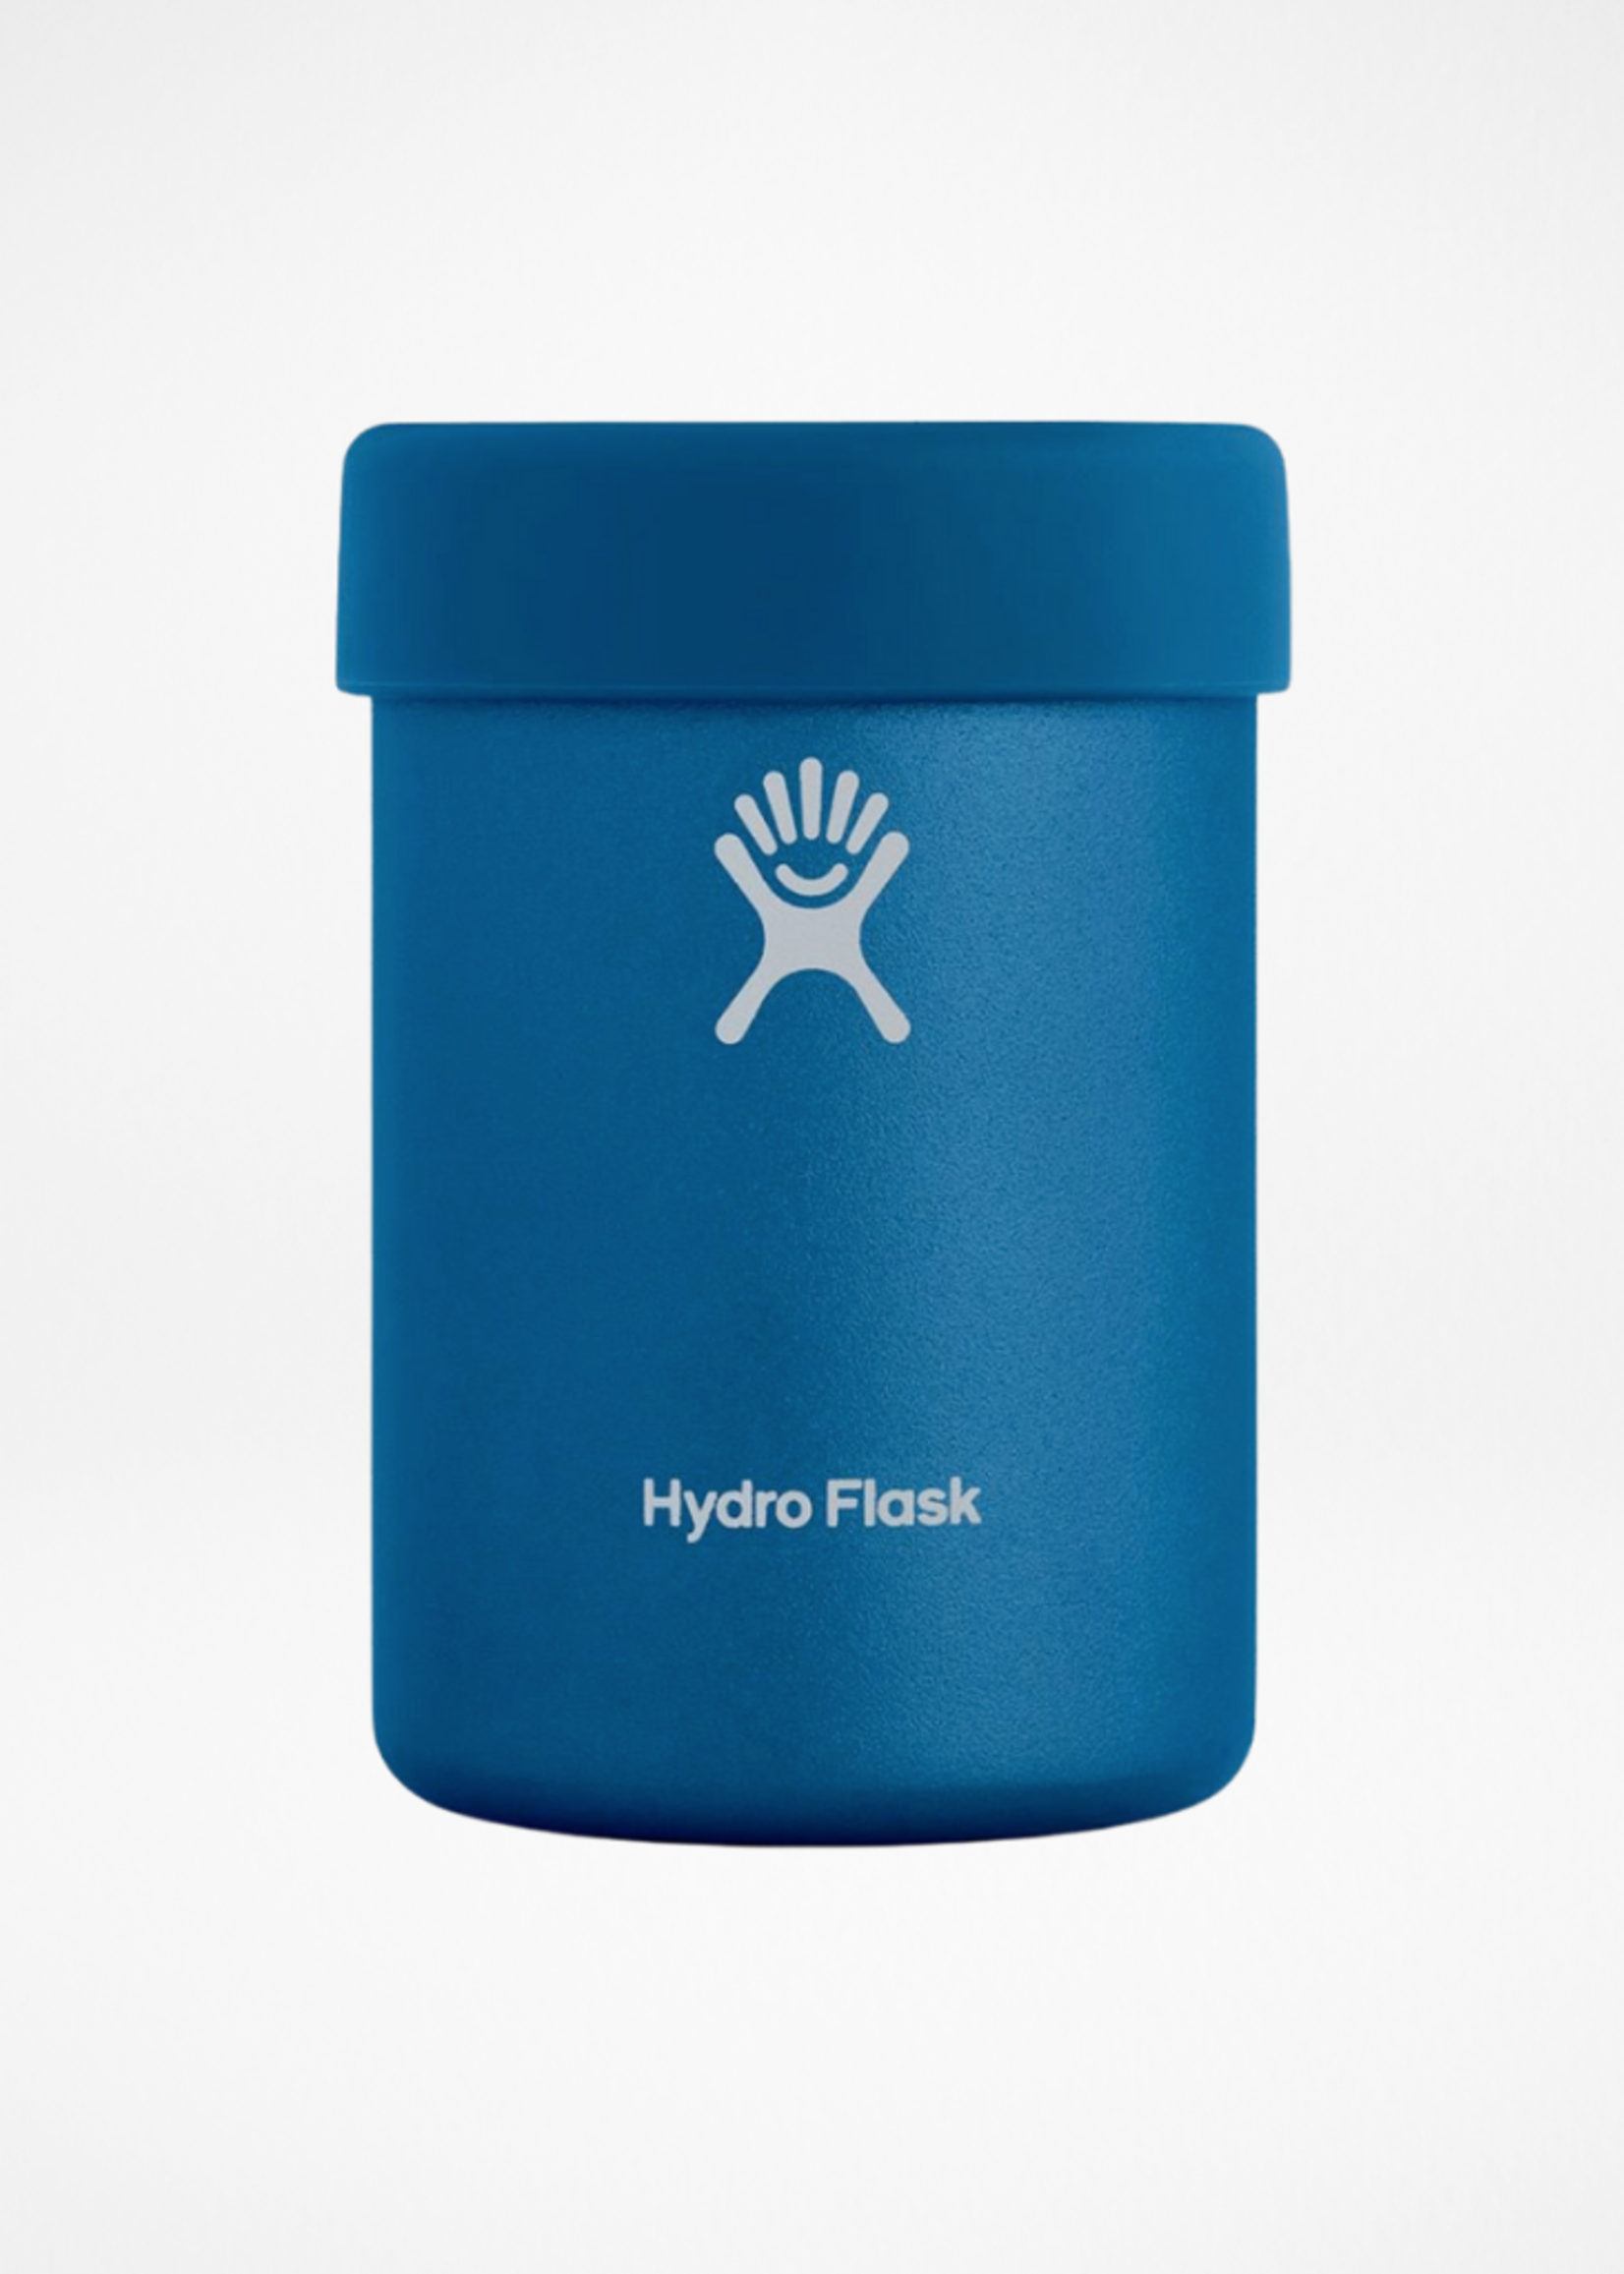 HYDRO FLASK 21 HYDRO FLASK COOLER CUP 12oz